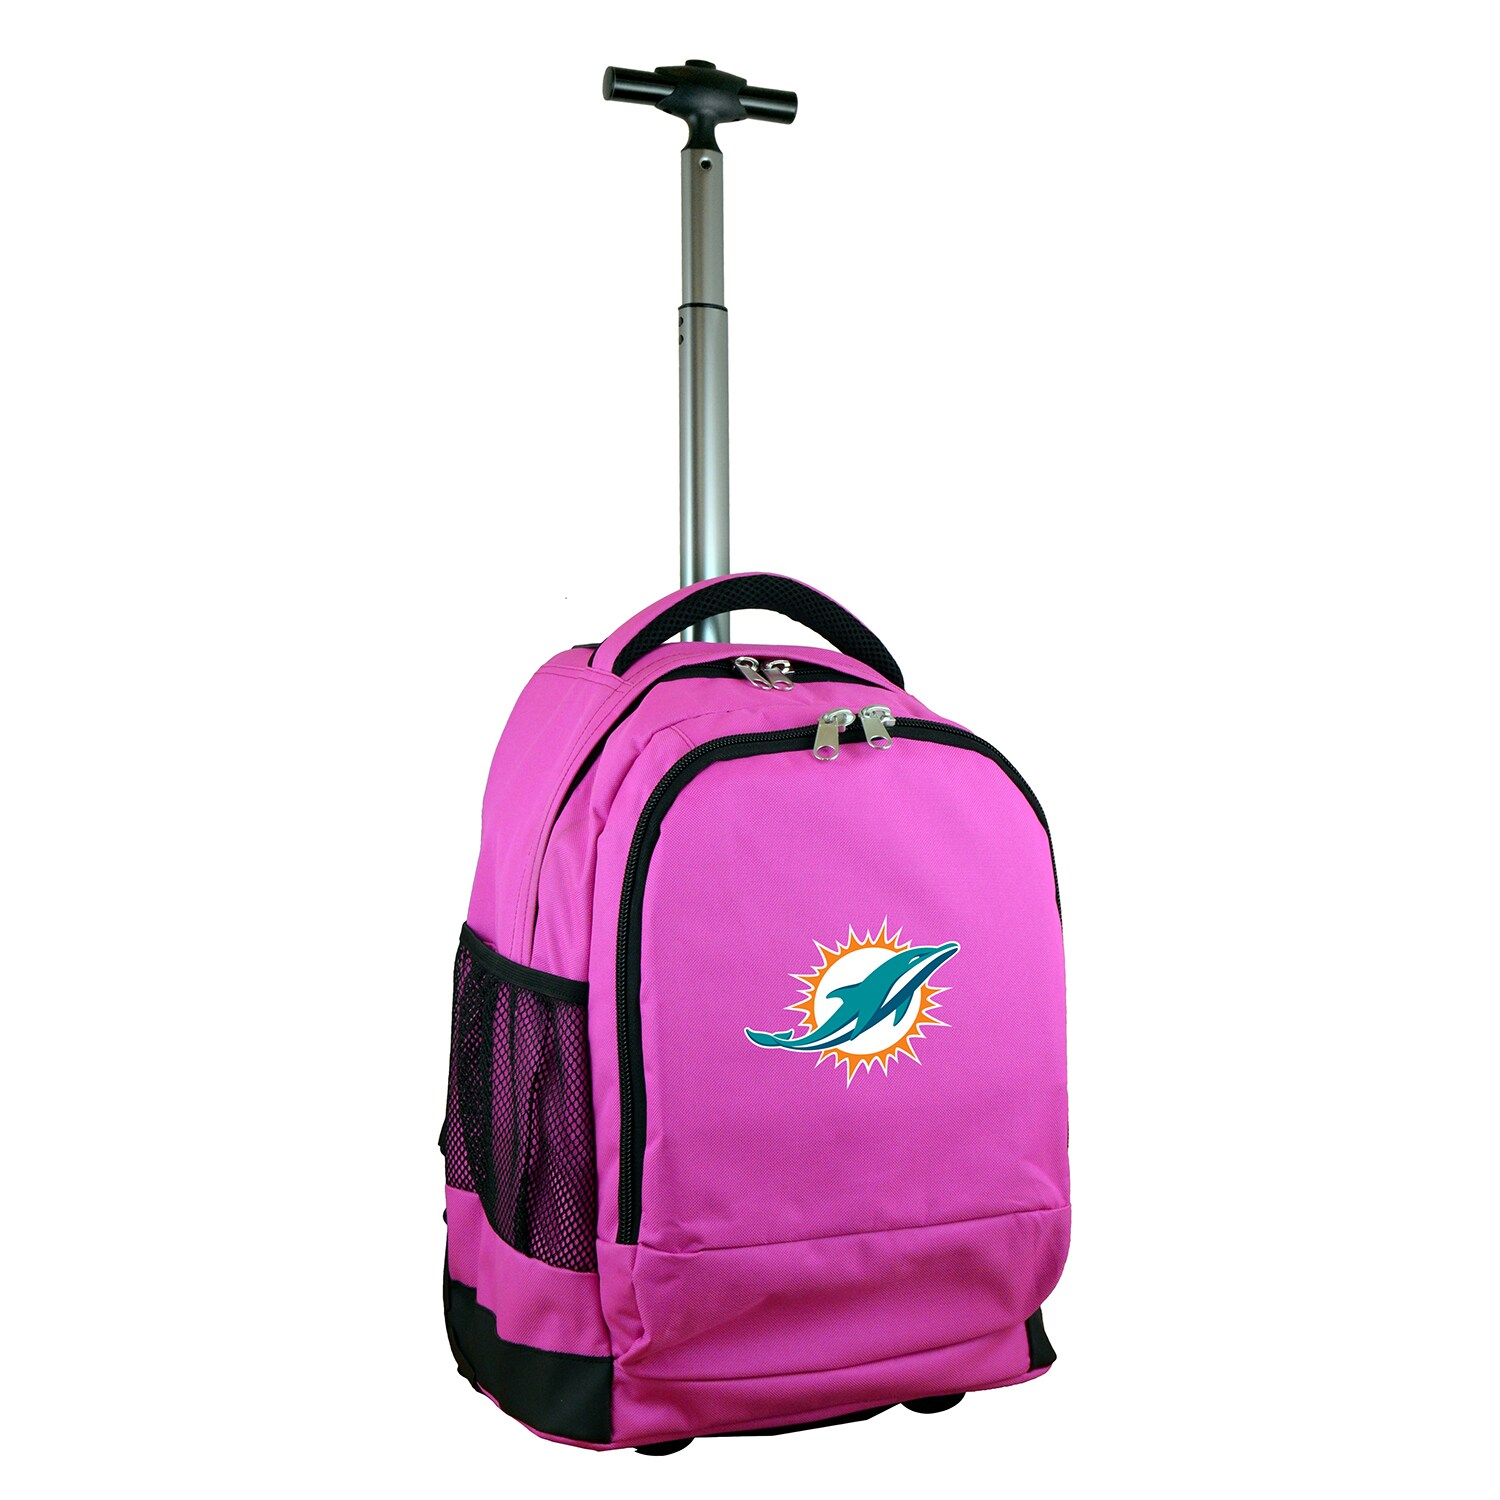 Miami Dolphins 19'' Premium Wheeled Backpack - Pink